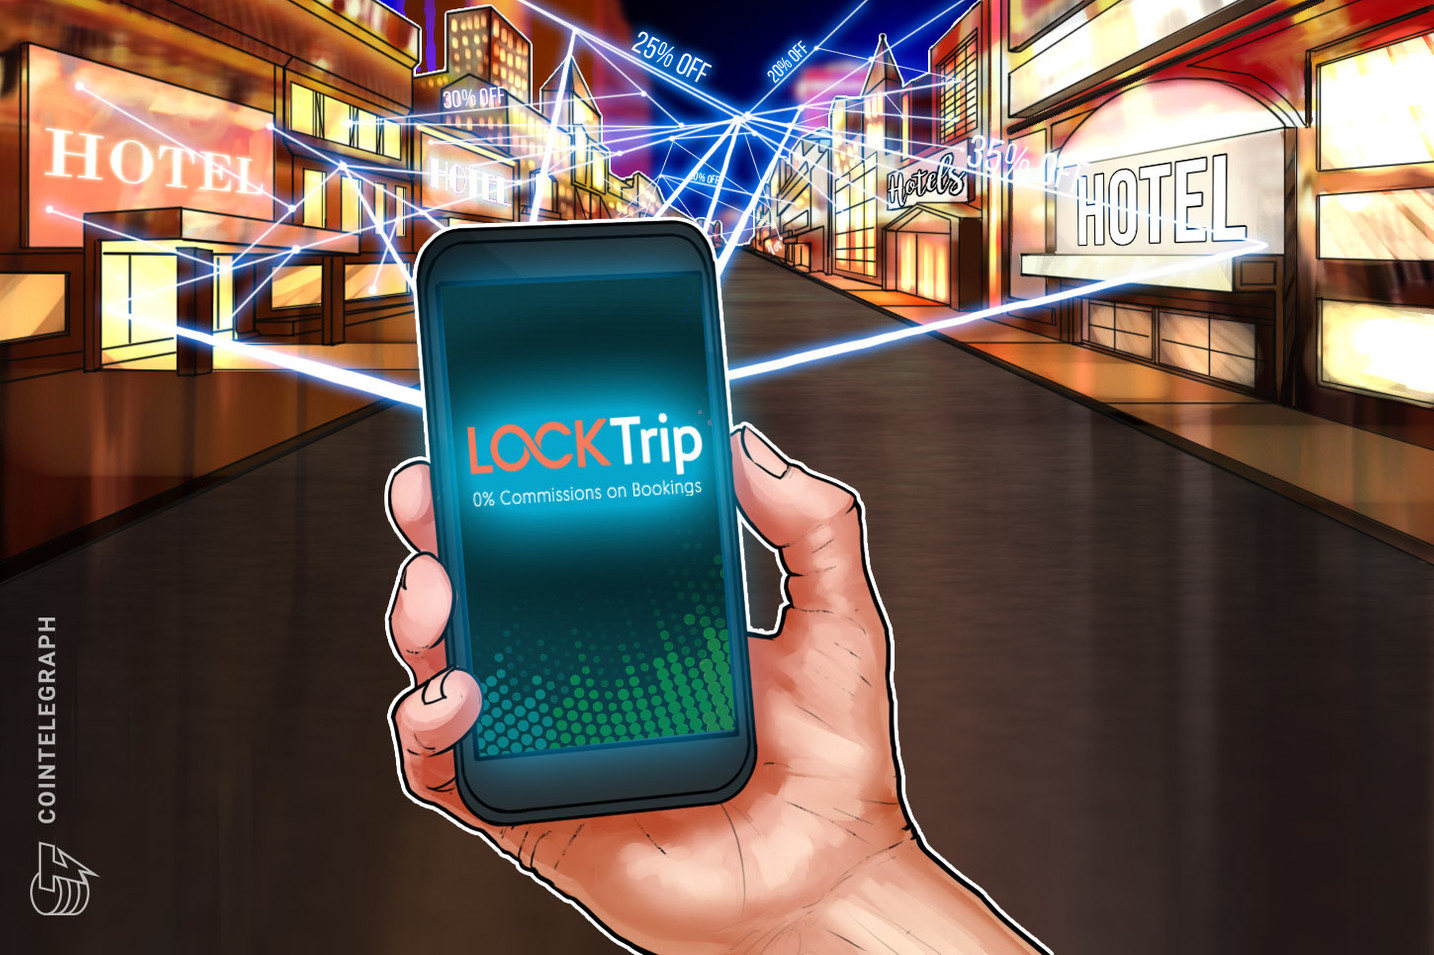 Blockchain Travel Service to Offer Hotels 20 Percent Cheaper Than on Booking.com or AirBnb